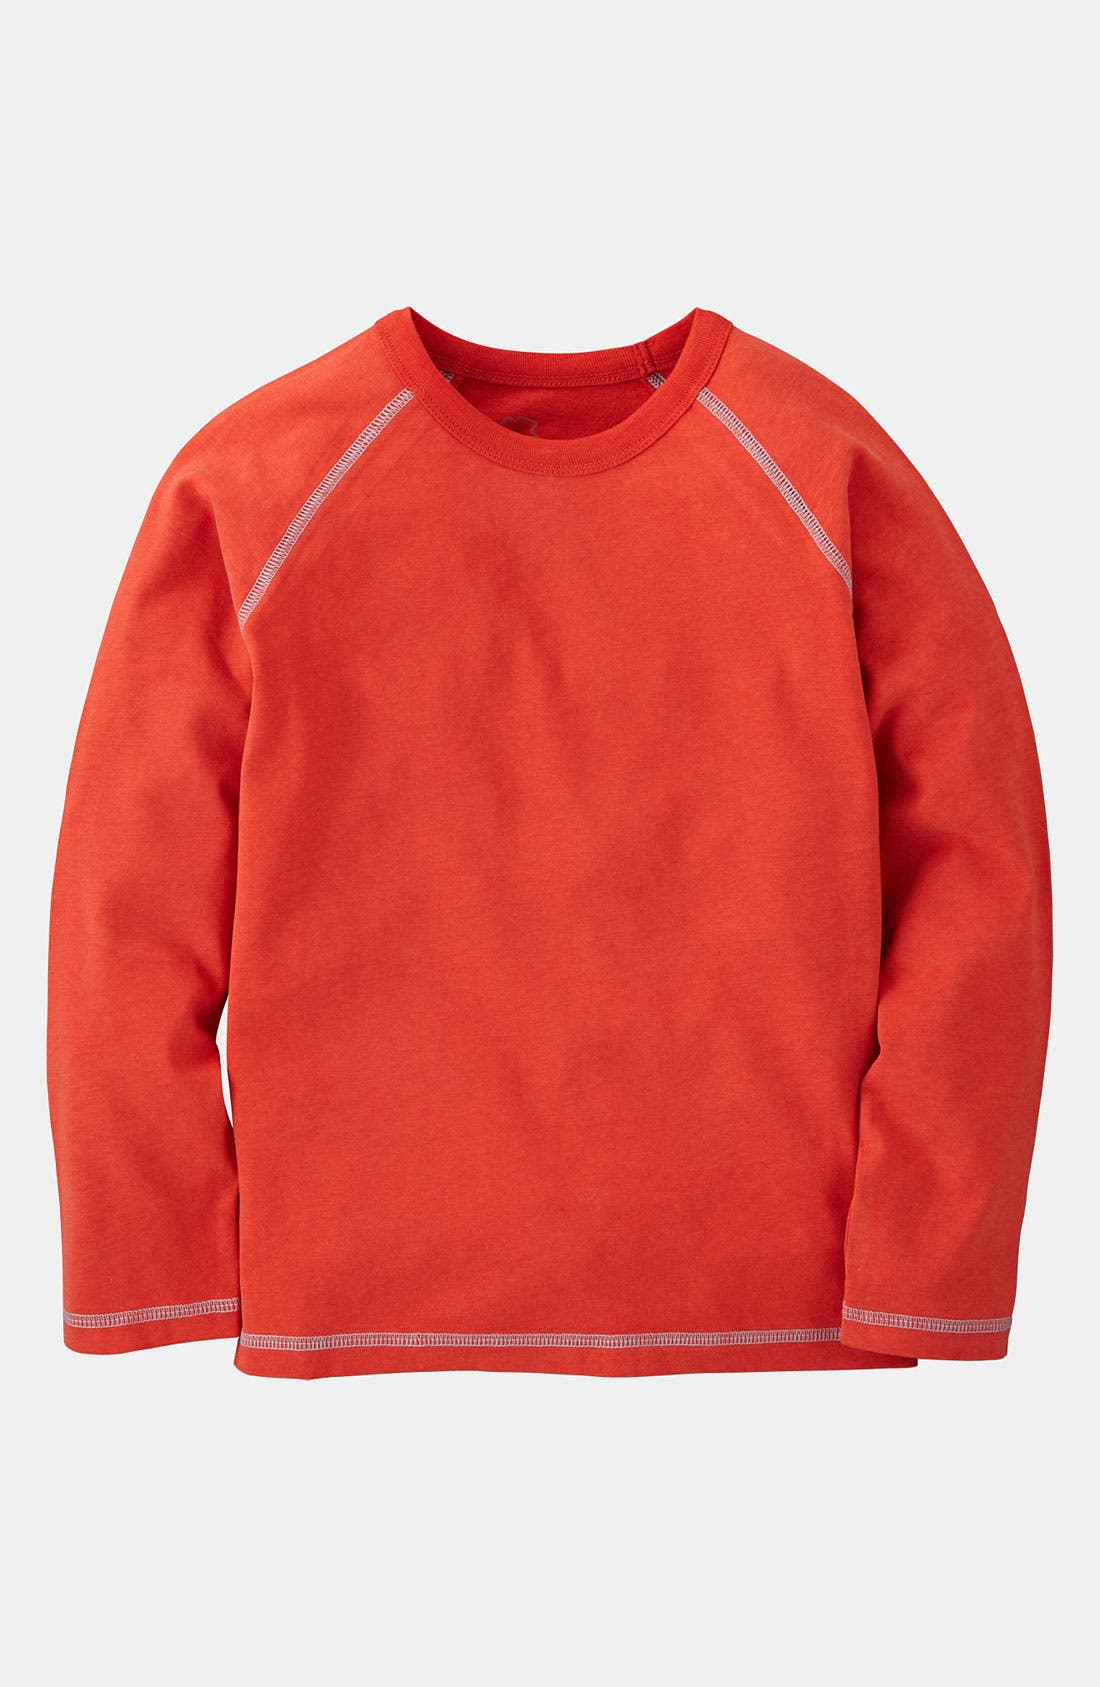 Alternate Image 1 Selected - Mini Boden Contrast Stitch T-Shirt (Toddler)